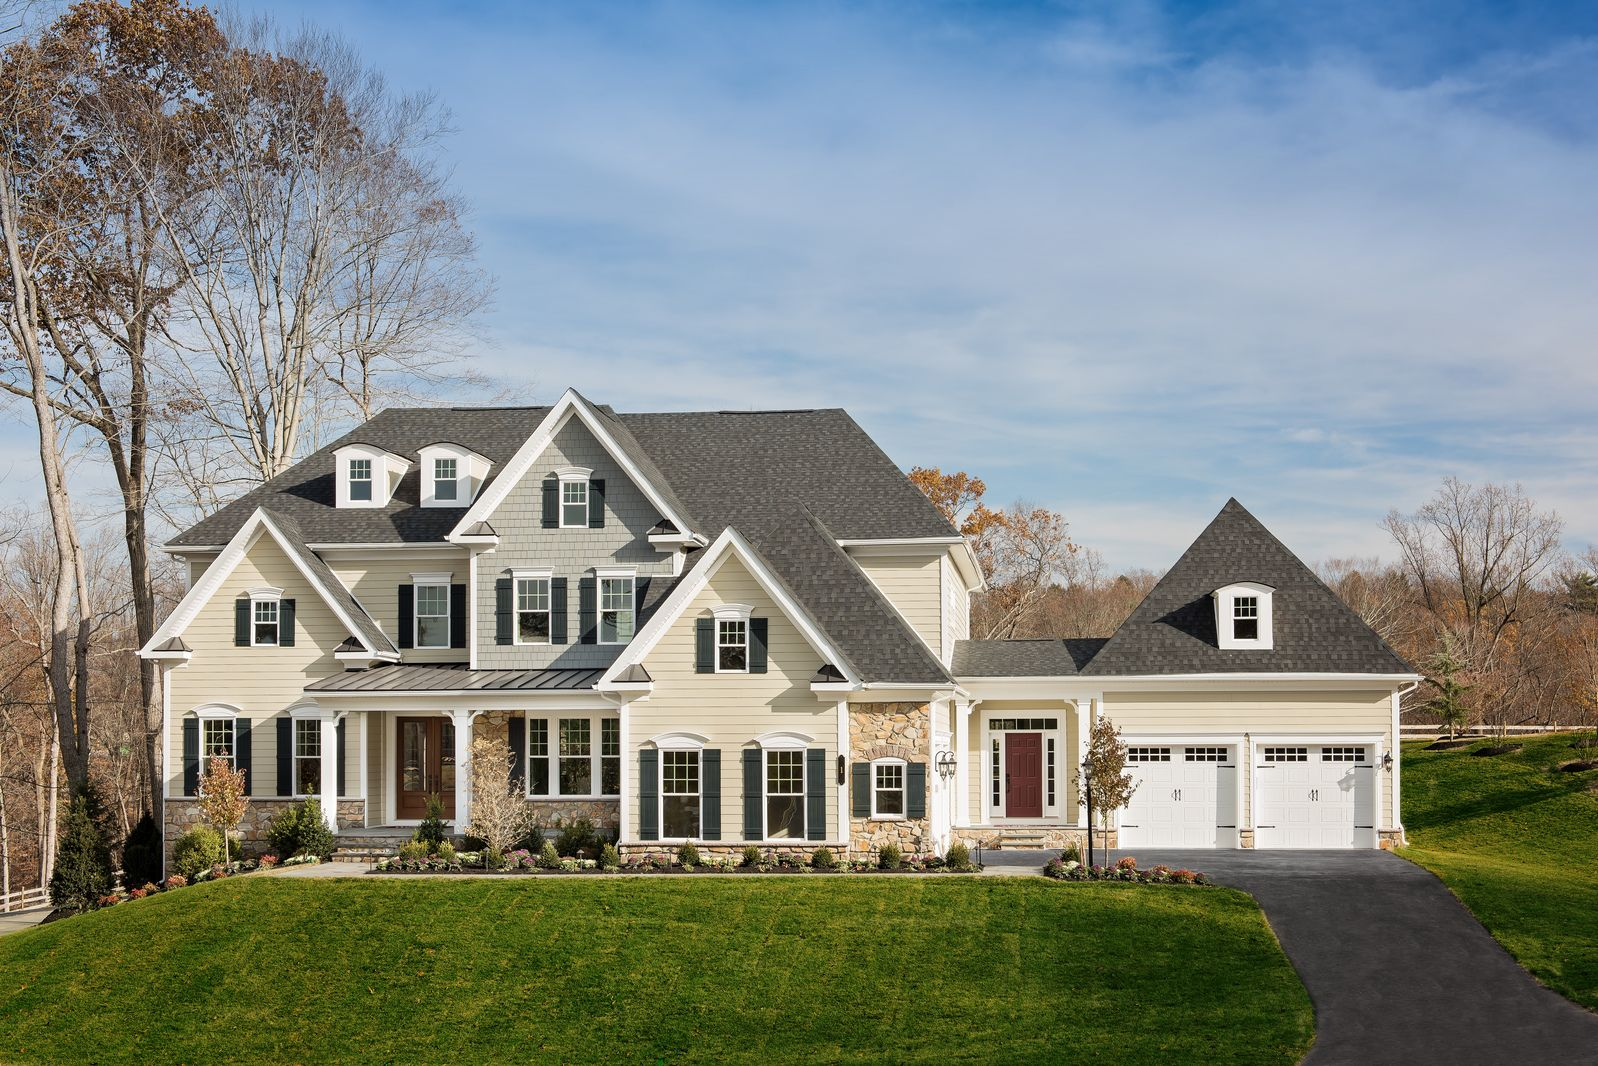 WELCOME TO GREYSTONE:The only neighborhood featuring an exclusive enclave of 28 estate homes, minutes from downtown West Chester & walkable to Lambert Park.Schedule your personal tour today.